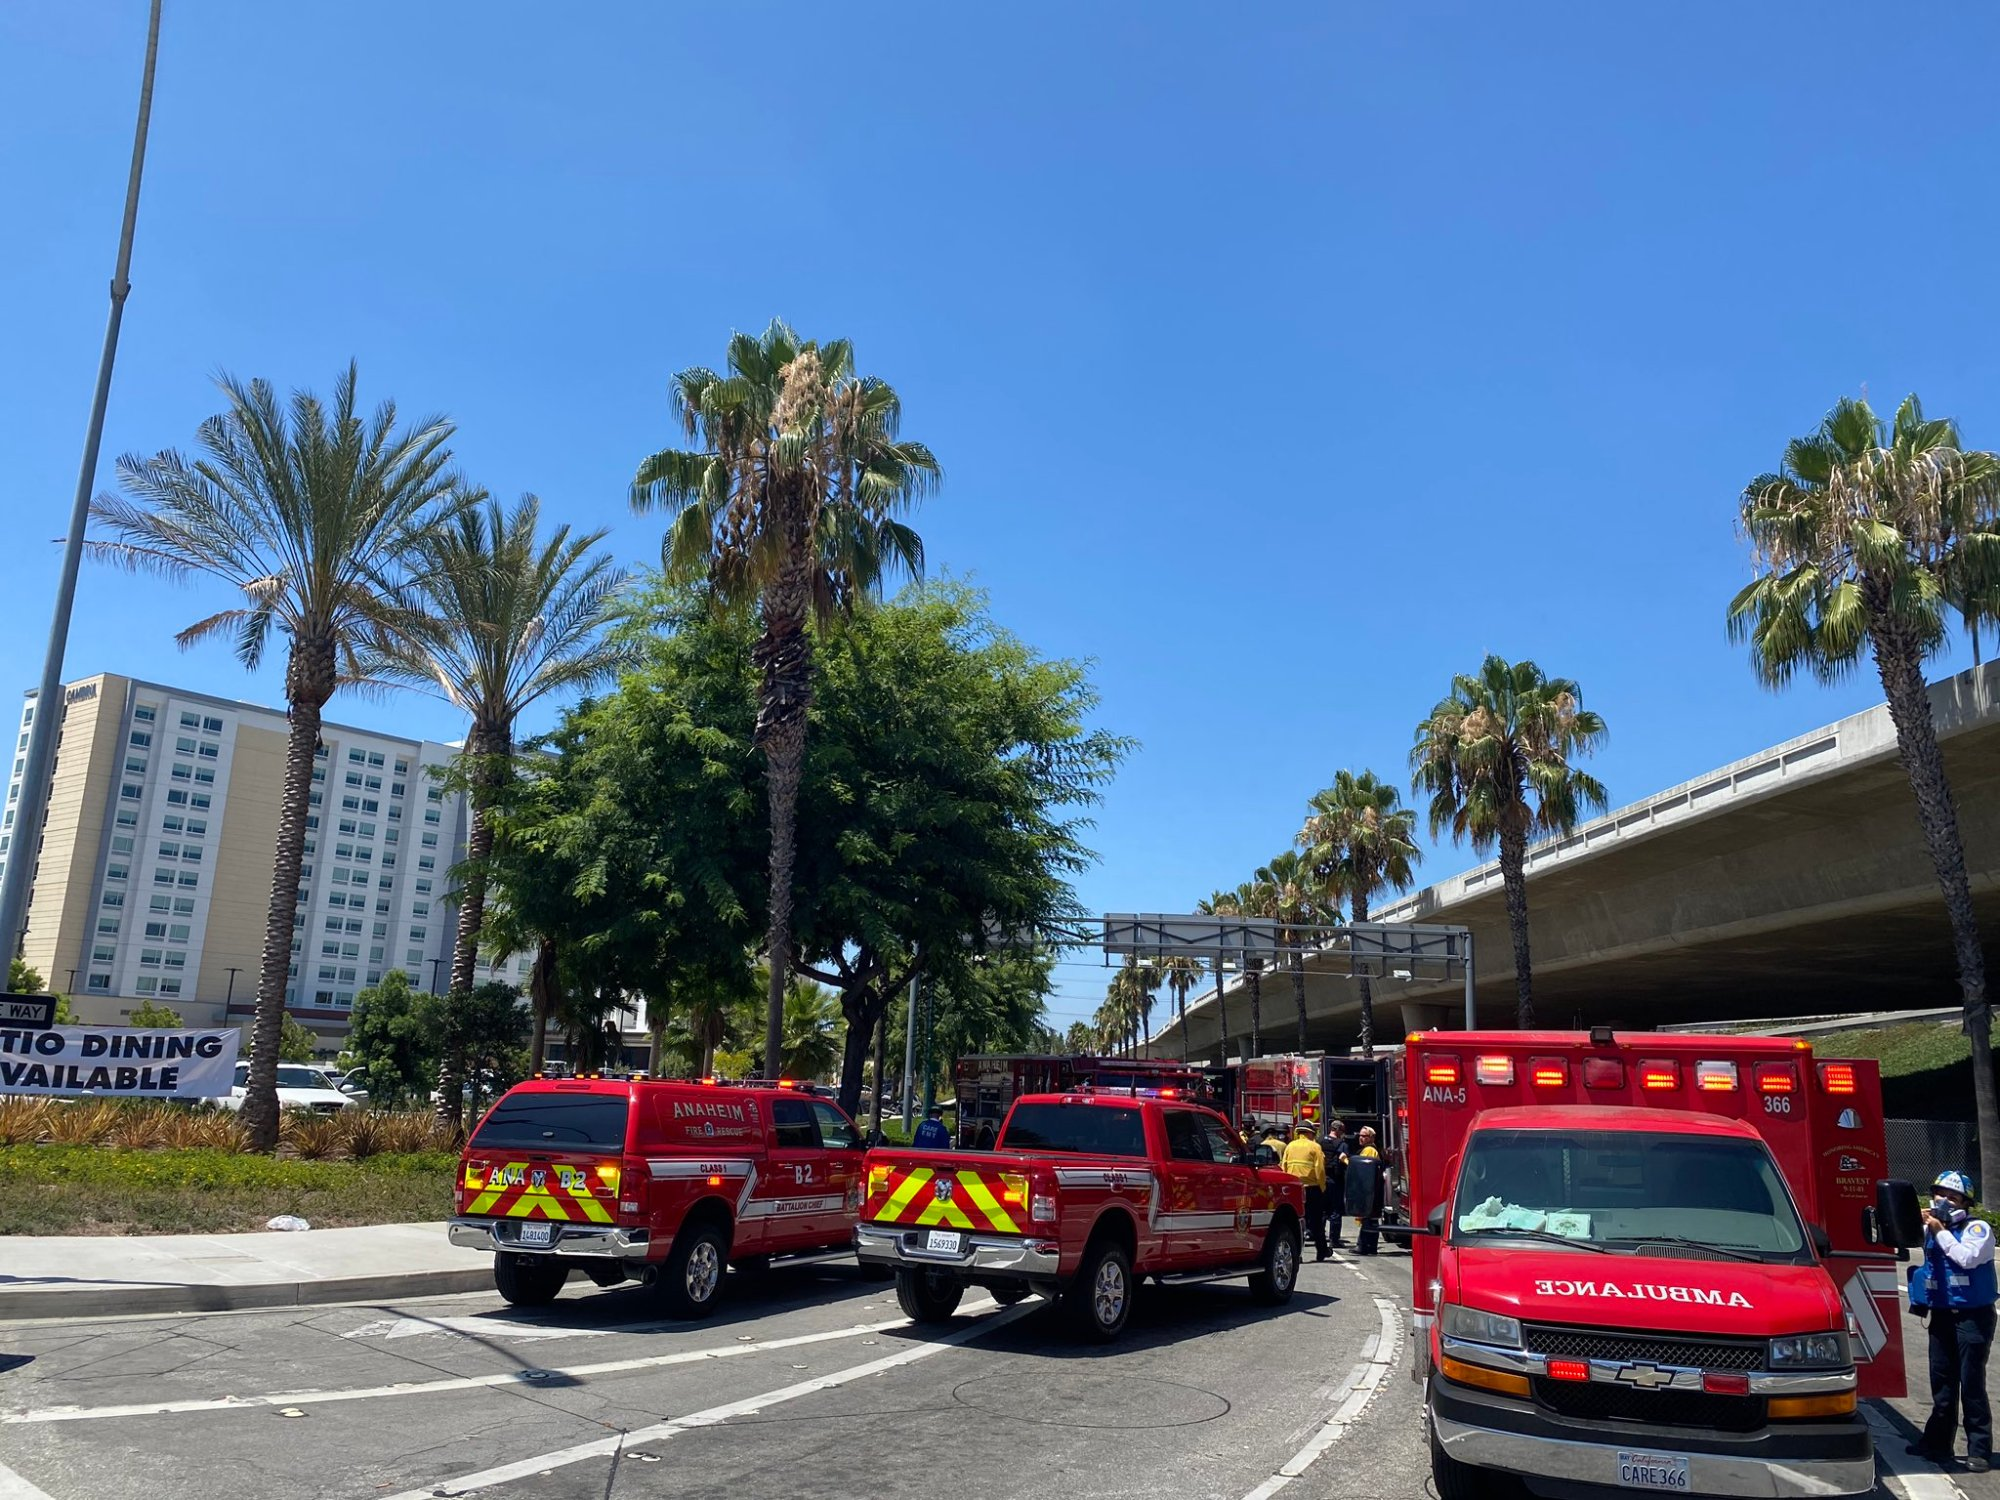 Police responded to a hotel in the 100 block of E. Katella for a large brawl involving 60 to 100 people on Aug. 5, 2020. (Anaheim Police Department)